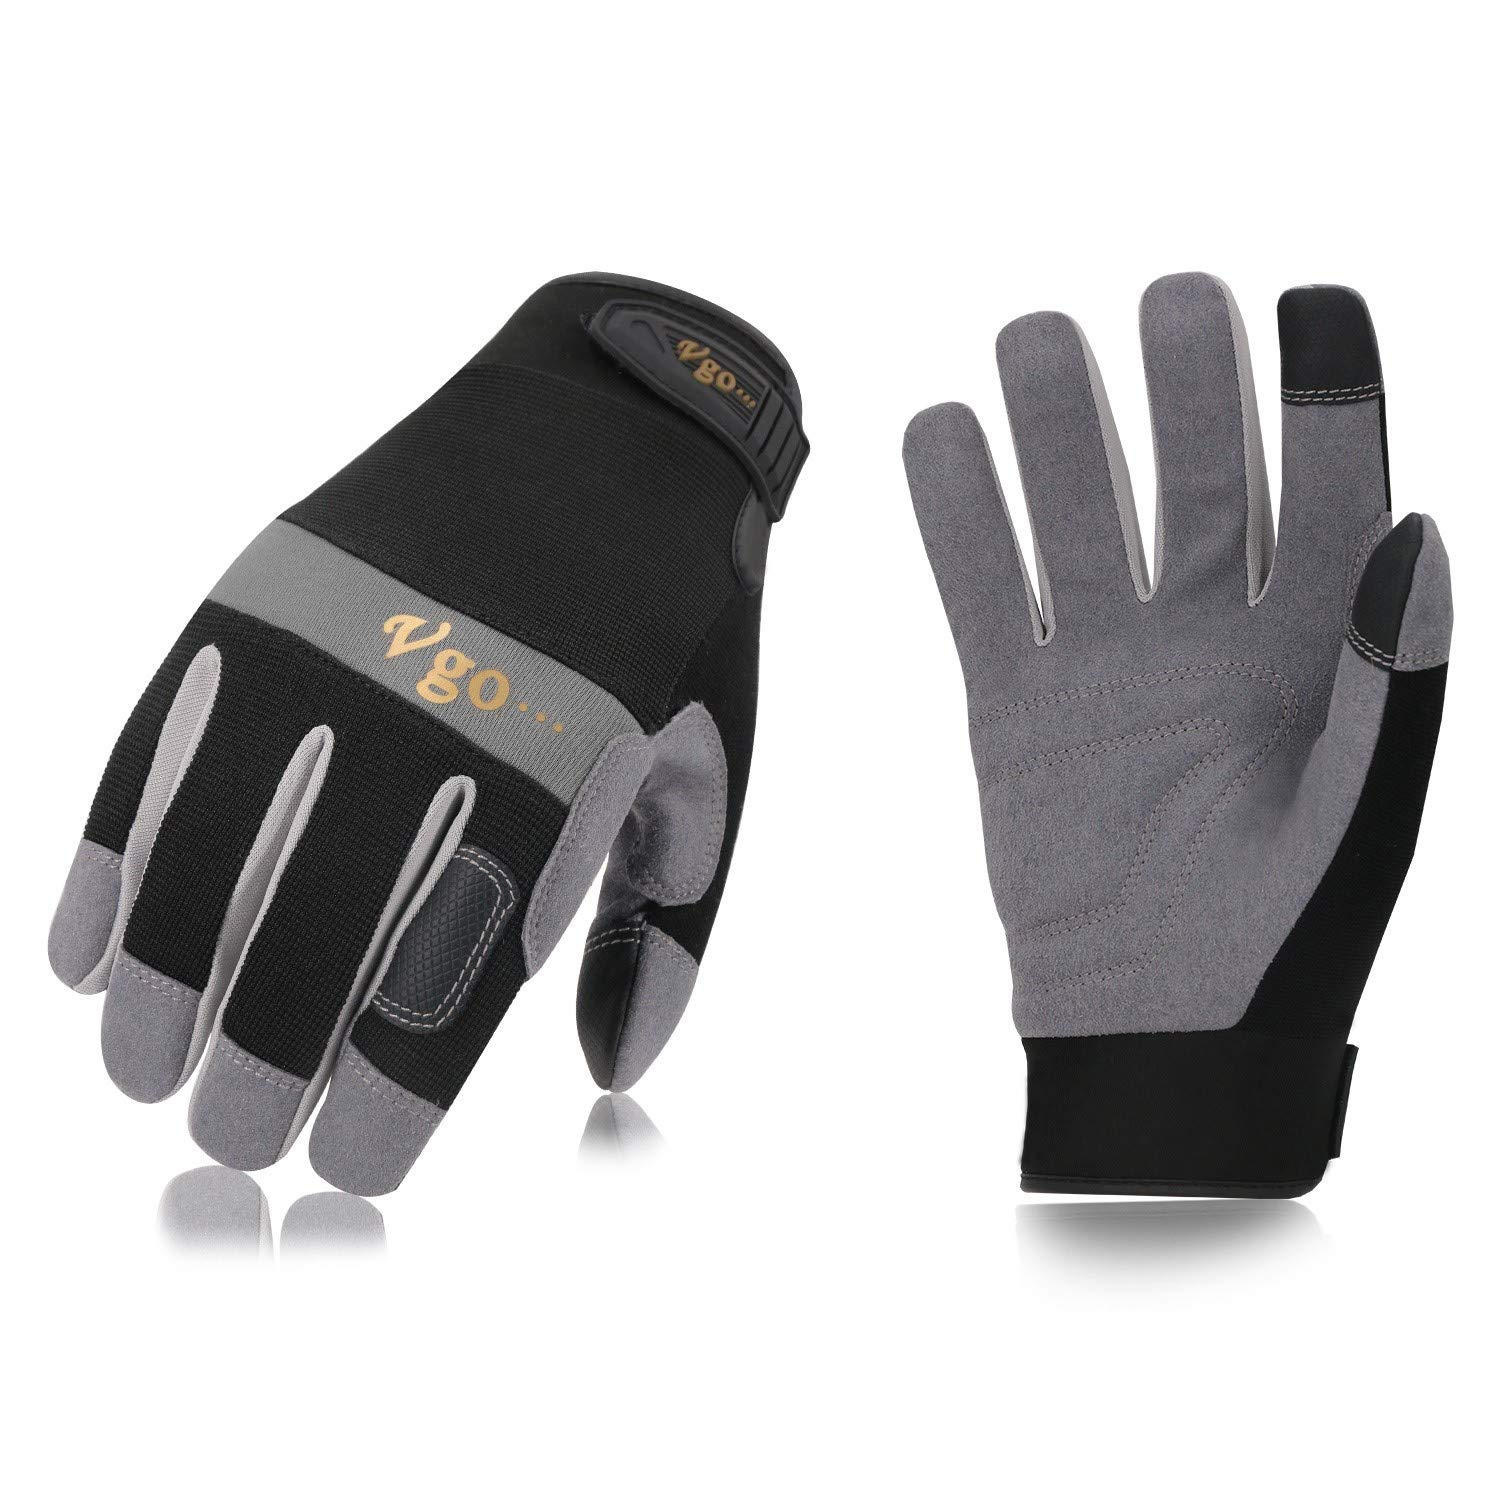 Vgo 3Pairs Synthetic Leather Work Gloves (Size XL,3Colors,SL7584)